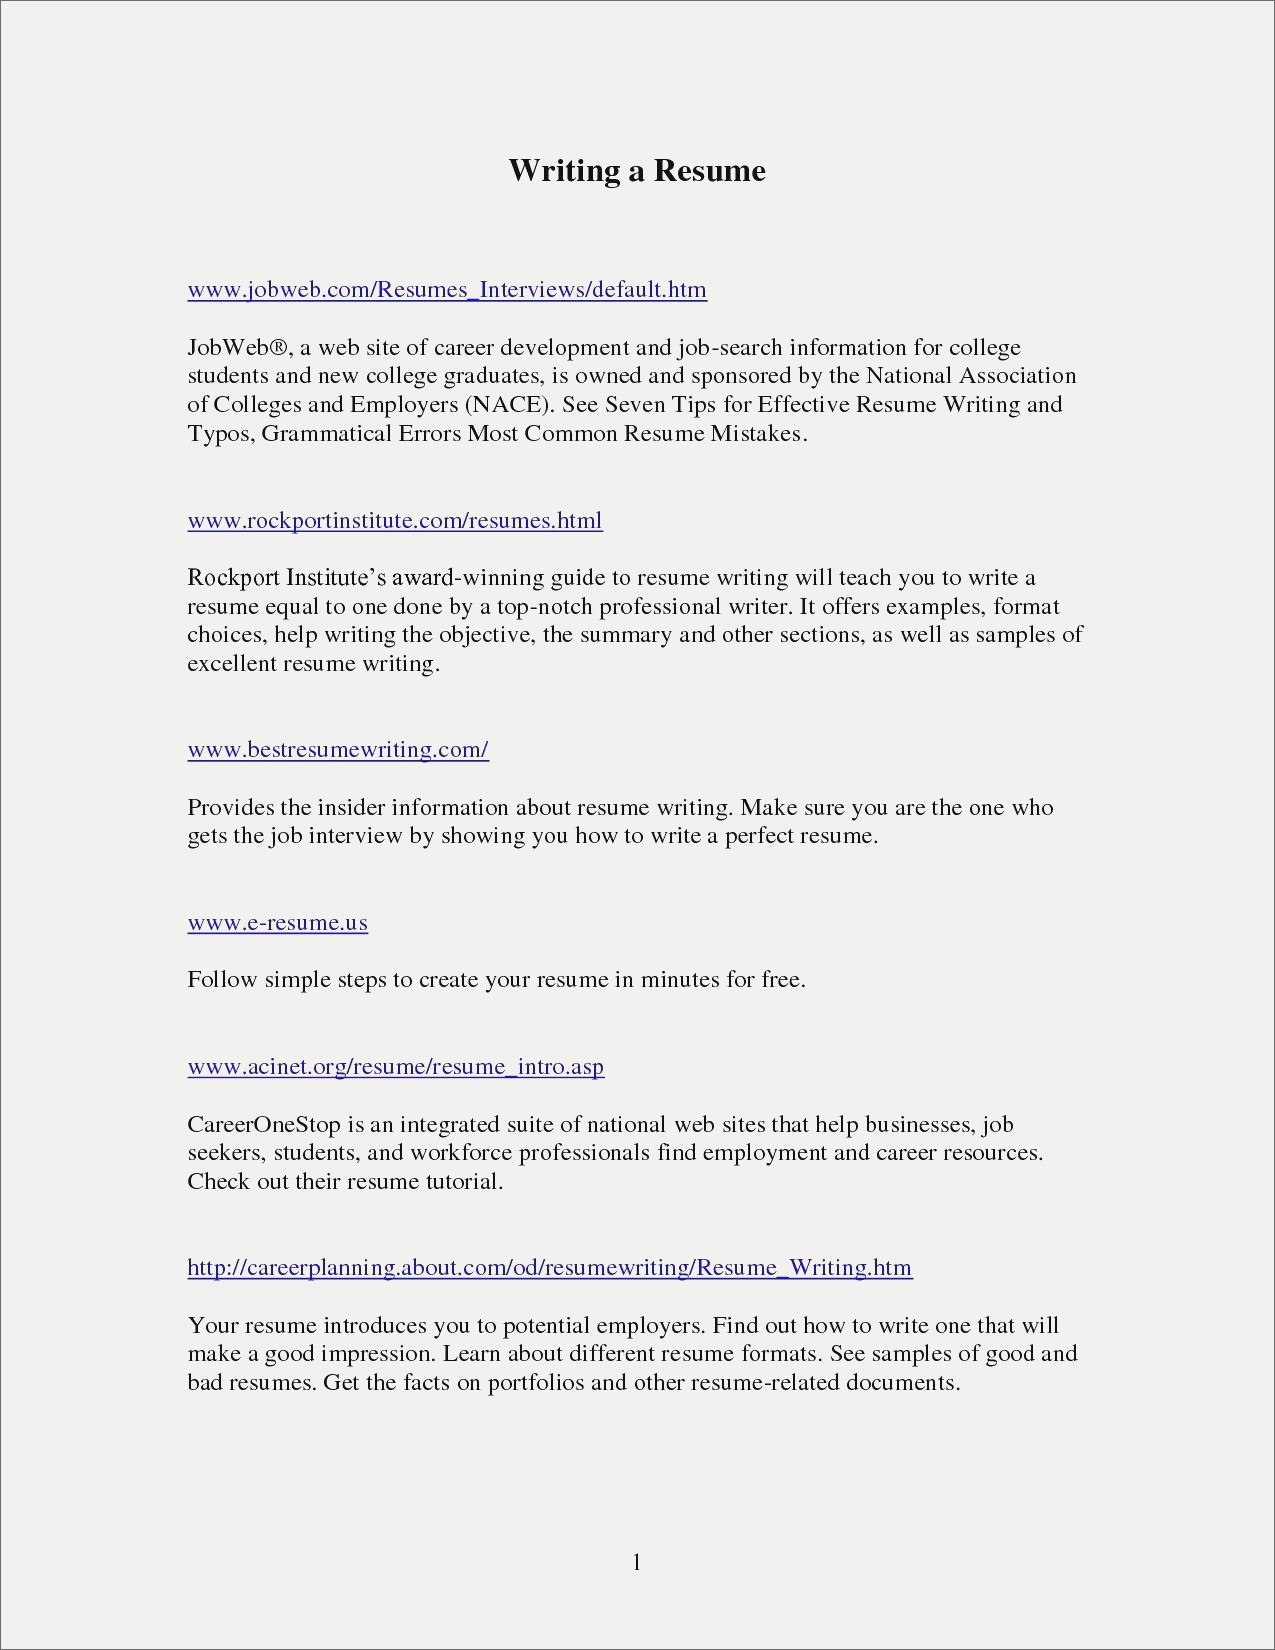 Web Developer Summary Resume - Sample Winning Resumes New Sample Entry Level Resume New Entry Level